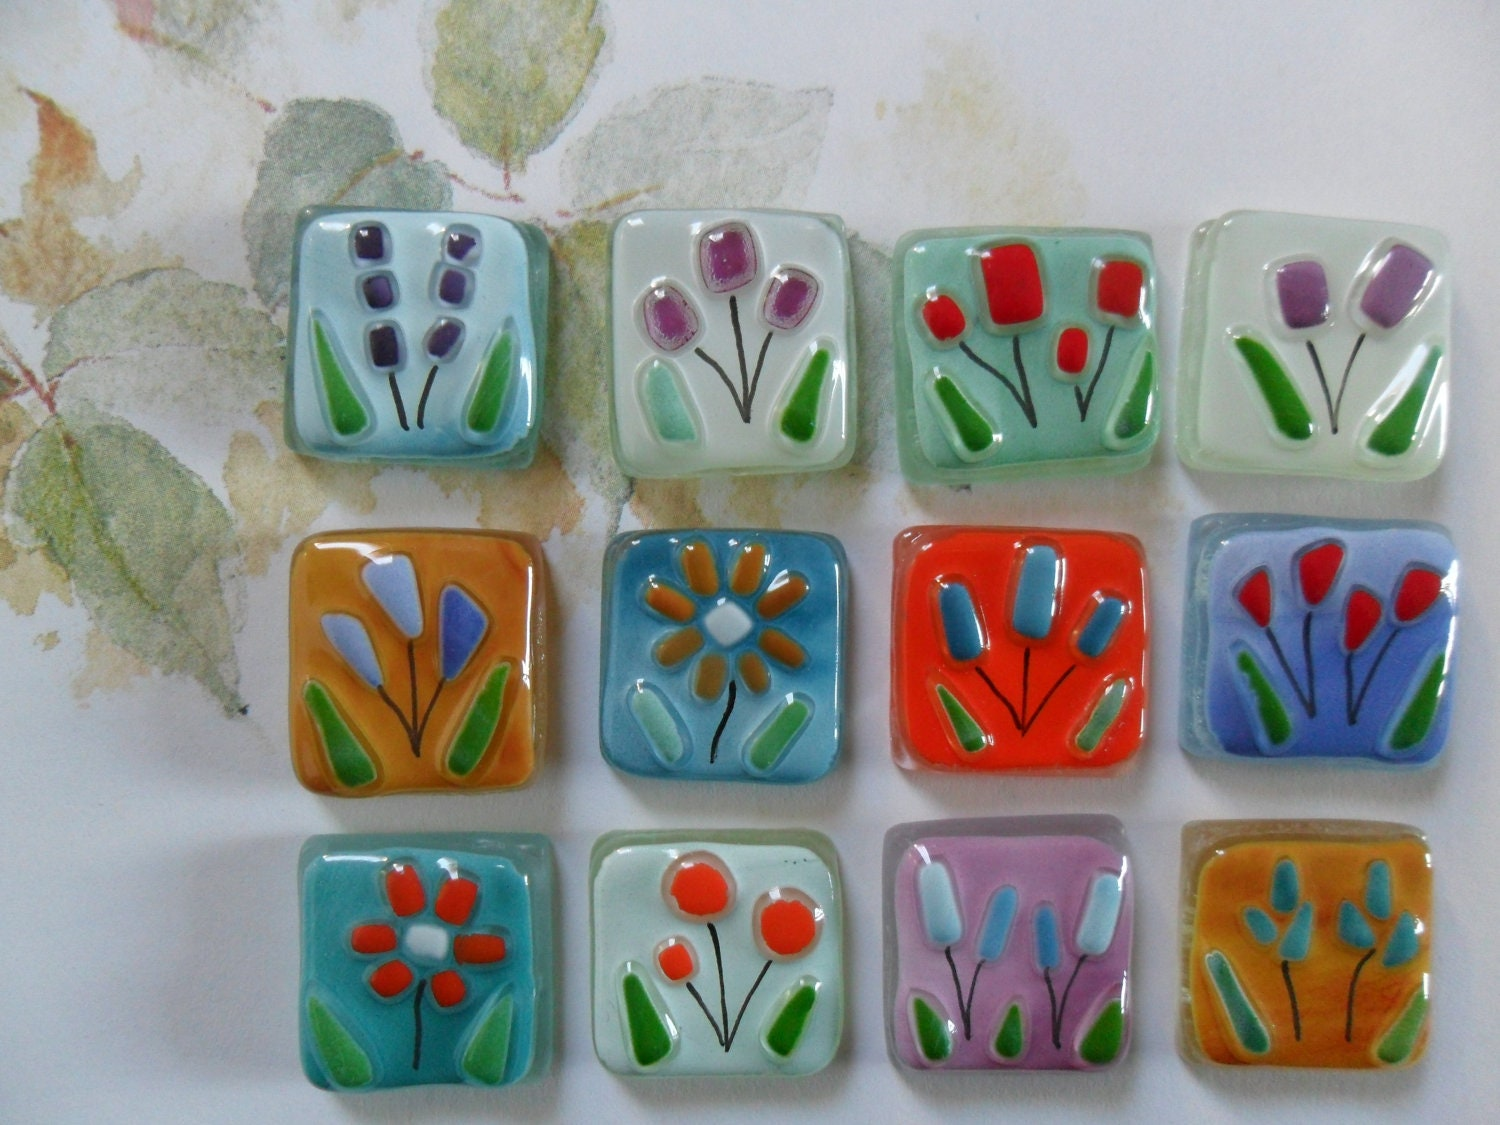 Fused glass tiles flowers floral handmade for mosaic art for Projects with glass